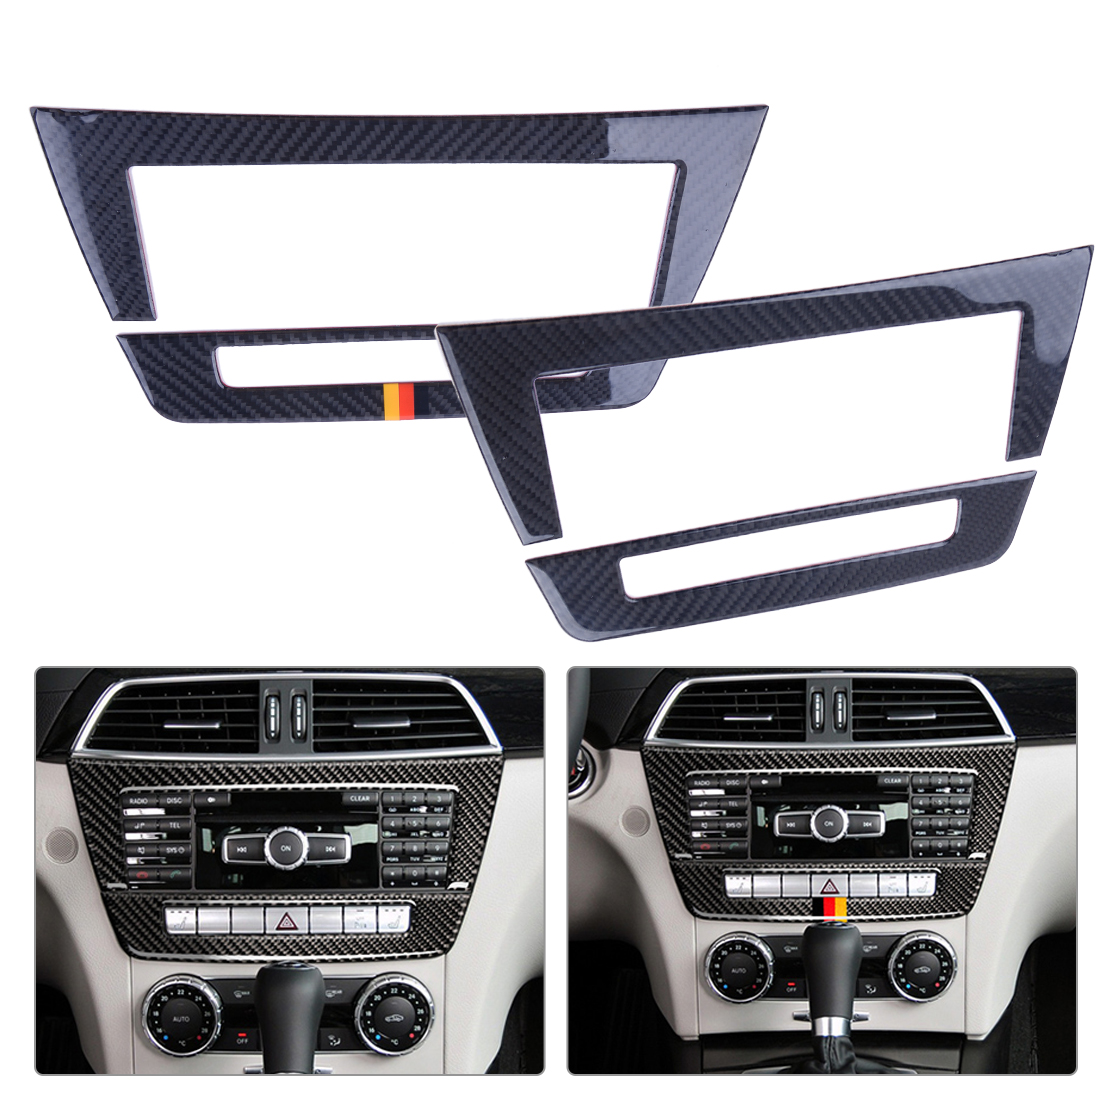 CITALL 2pcs Car Central Control CD Panels Cover Trim Frame Decorative For Mercedes Benz W204 C220 CDI <font><b>C200</b></font> <font><b>2010</b></font> 2011 2012 2013 image